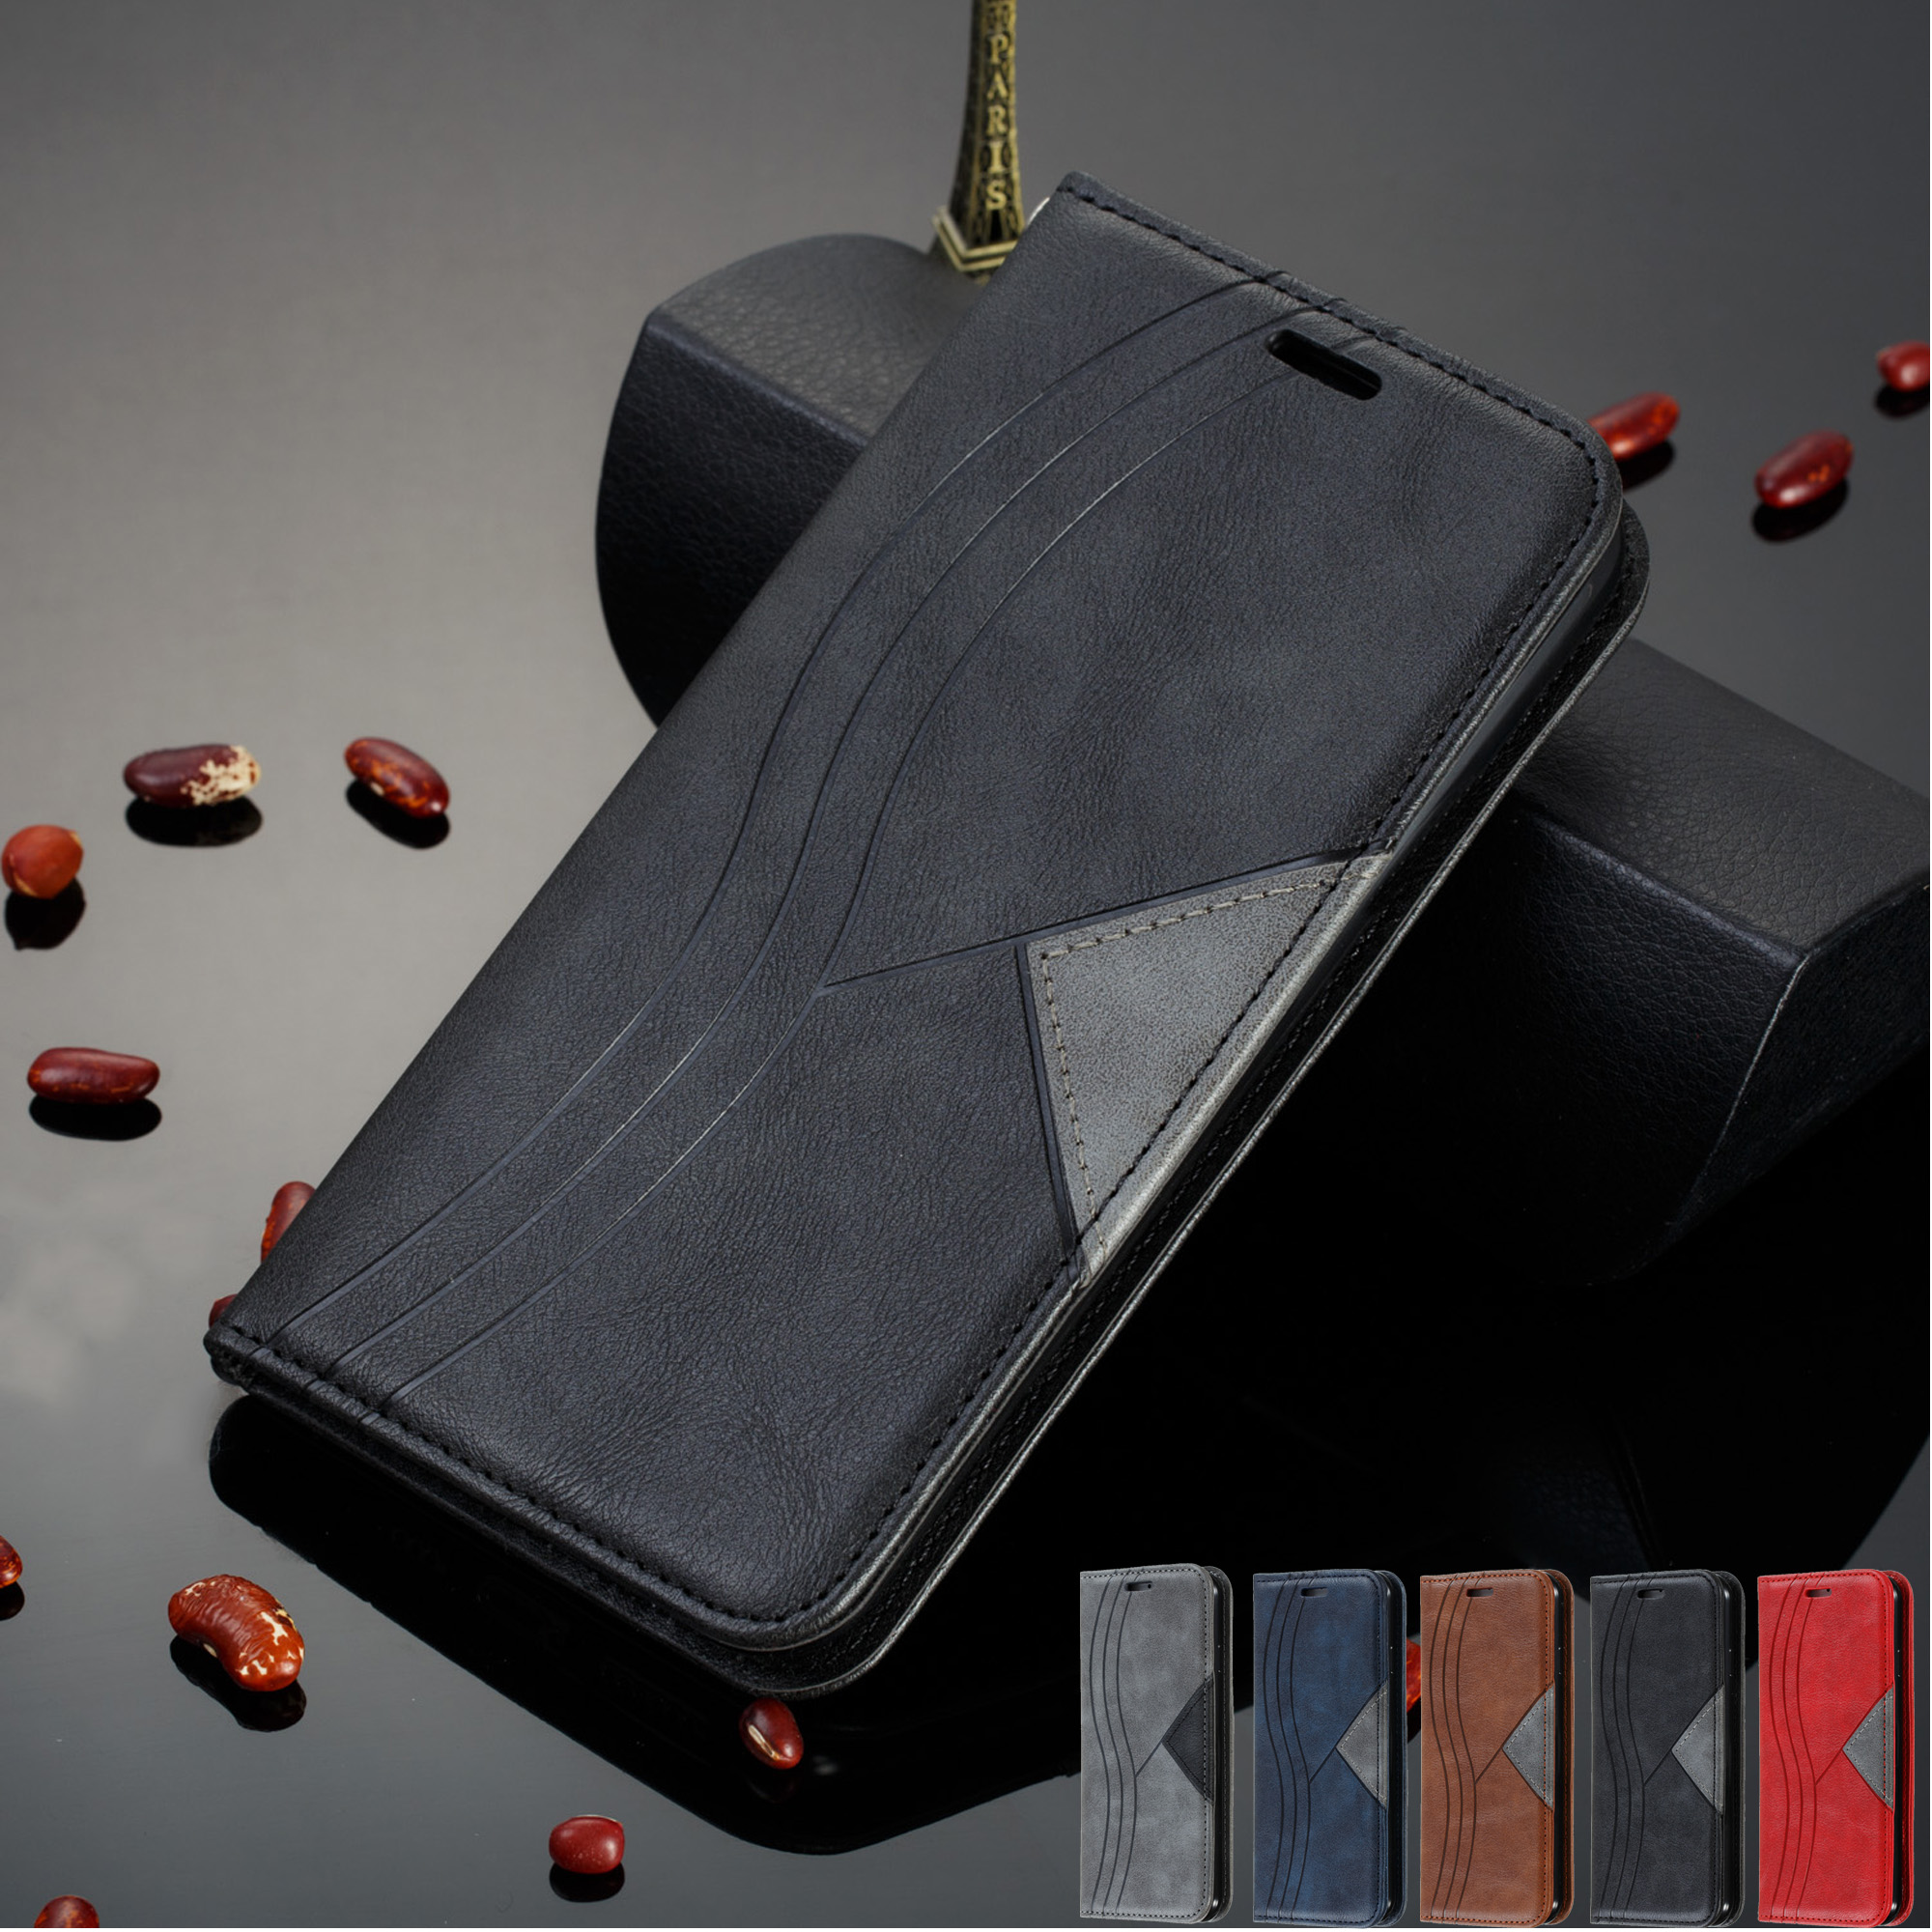 redmi note 8pro <font><b>Case</b></font> On For Coque <font><b>Xiaomi</b></font> Redmi Note <font><b>8</b></font> 7 8A 7A 6A K20 8T <font><b>case</b></font> xiomi <font><b>Mi</b></font> CC9E A3 9T Note10 pro <font><b>Magnet</b></font> Leather Cover image